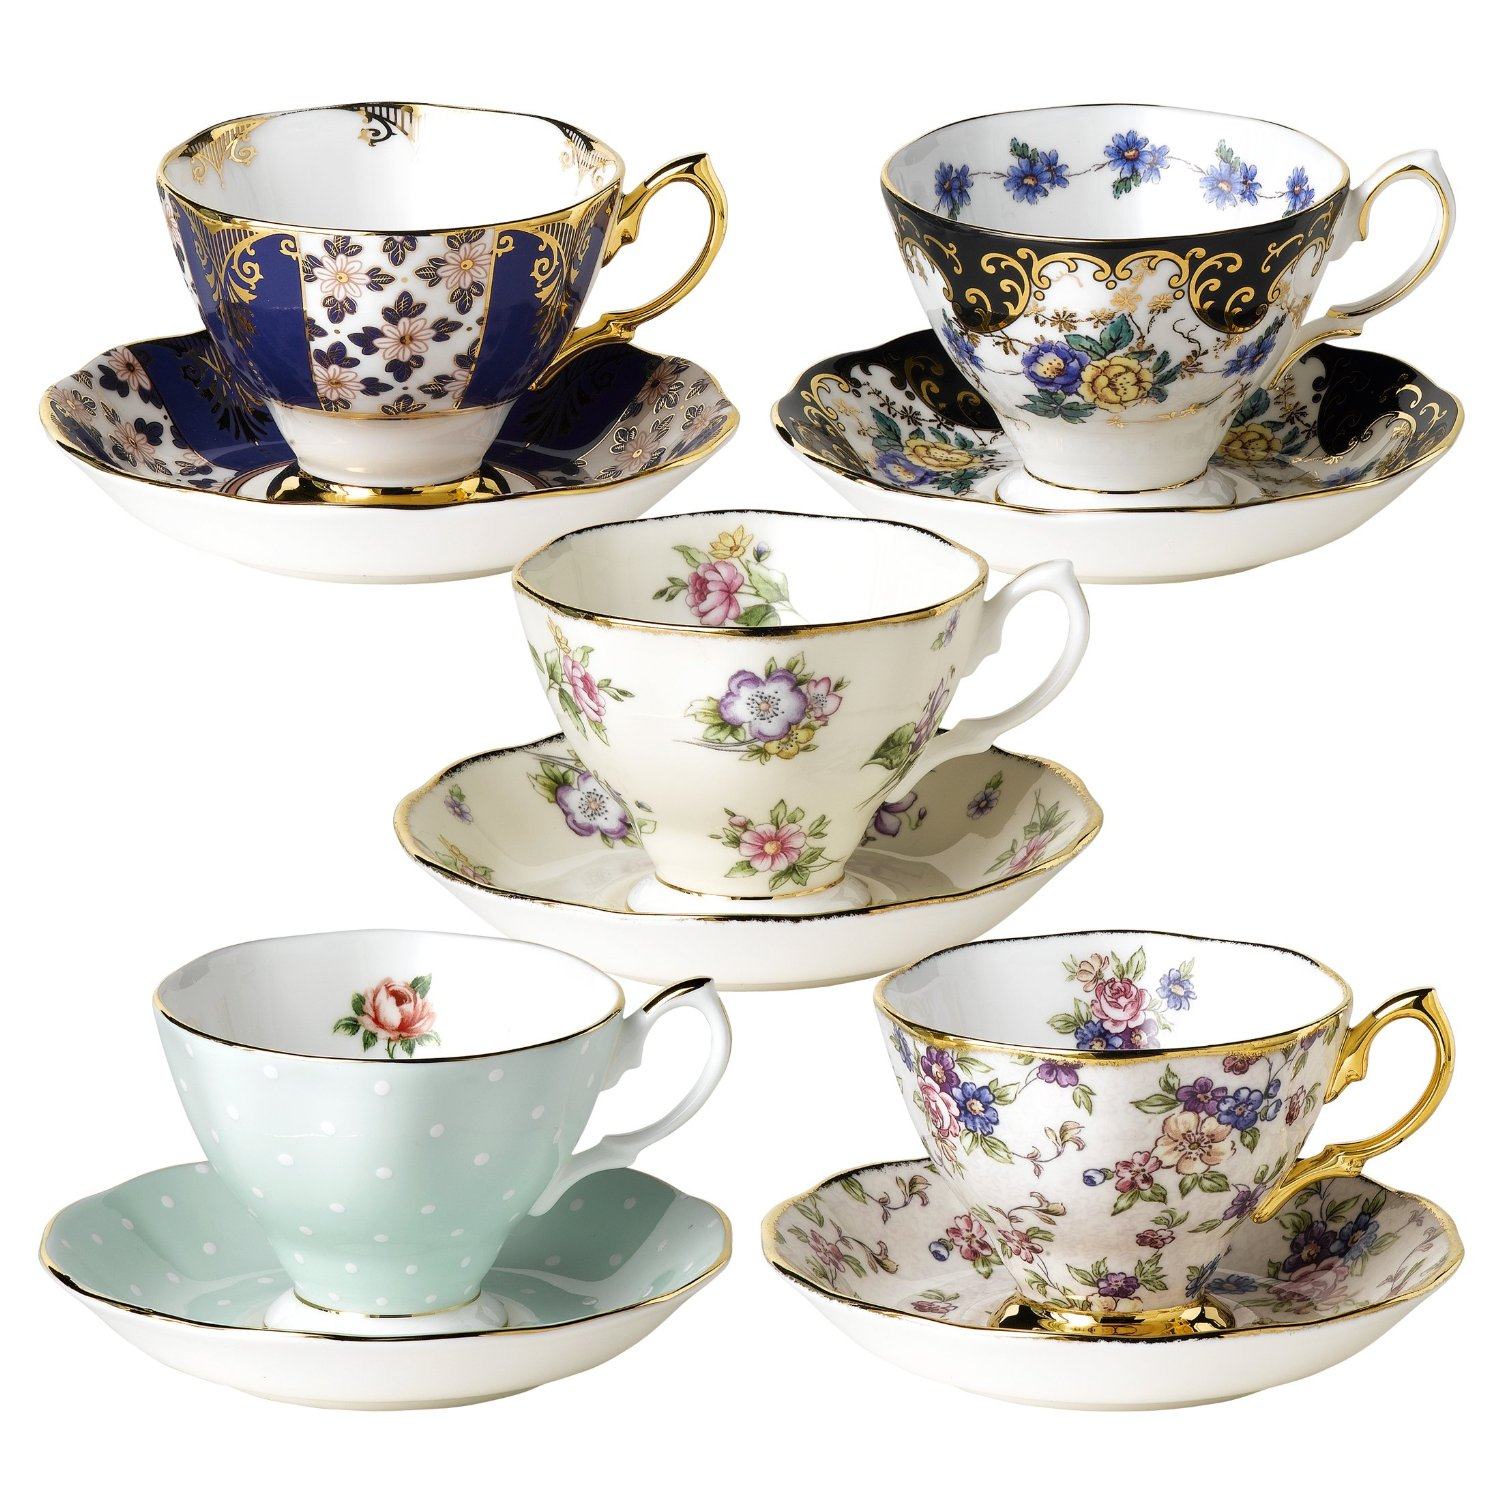 Best Price for Teacups and Saucers